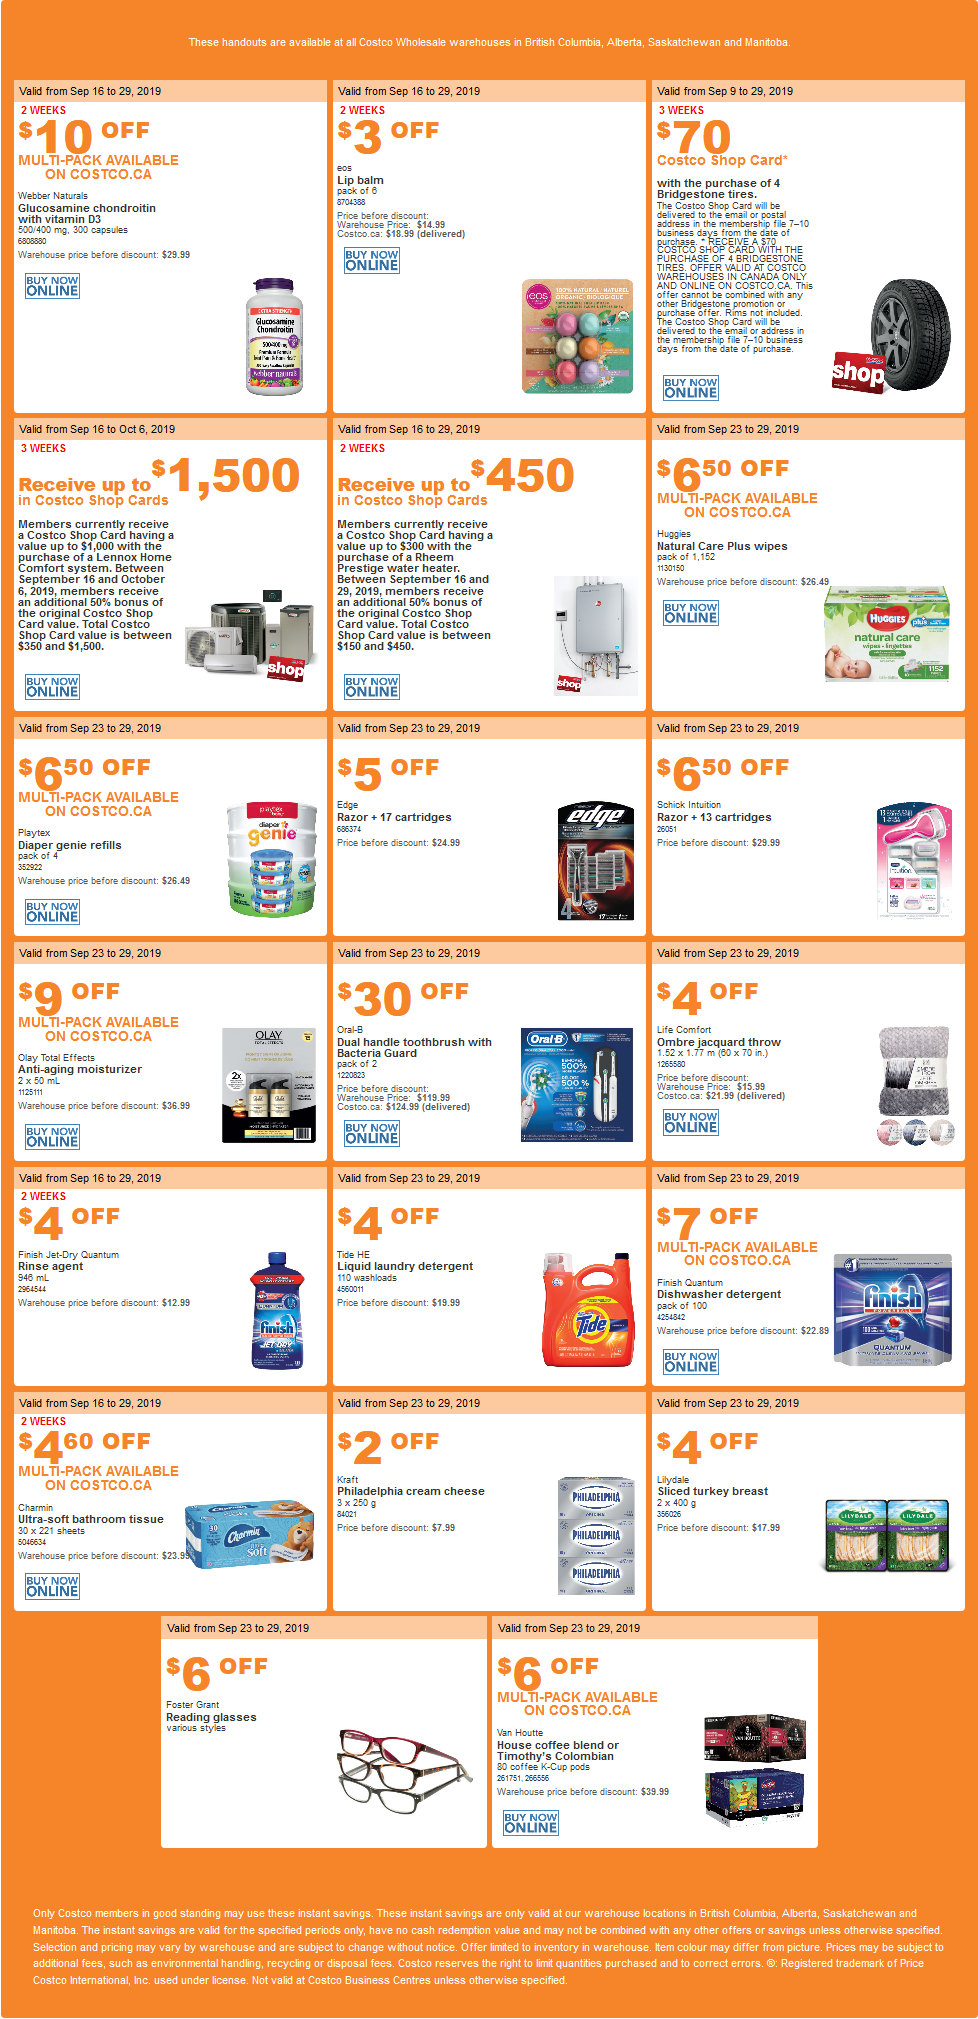 Costco Flyer for Sep 23-29, 2019 for BC, AB, SK, MB